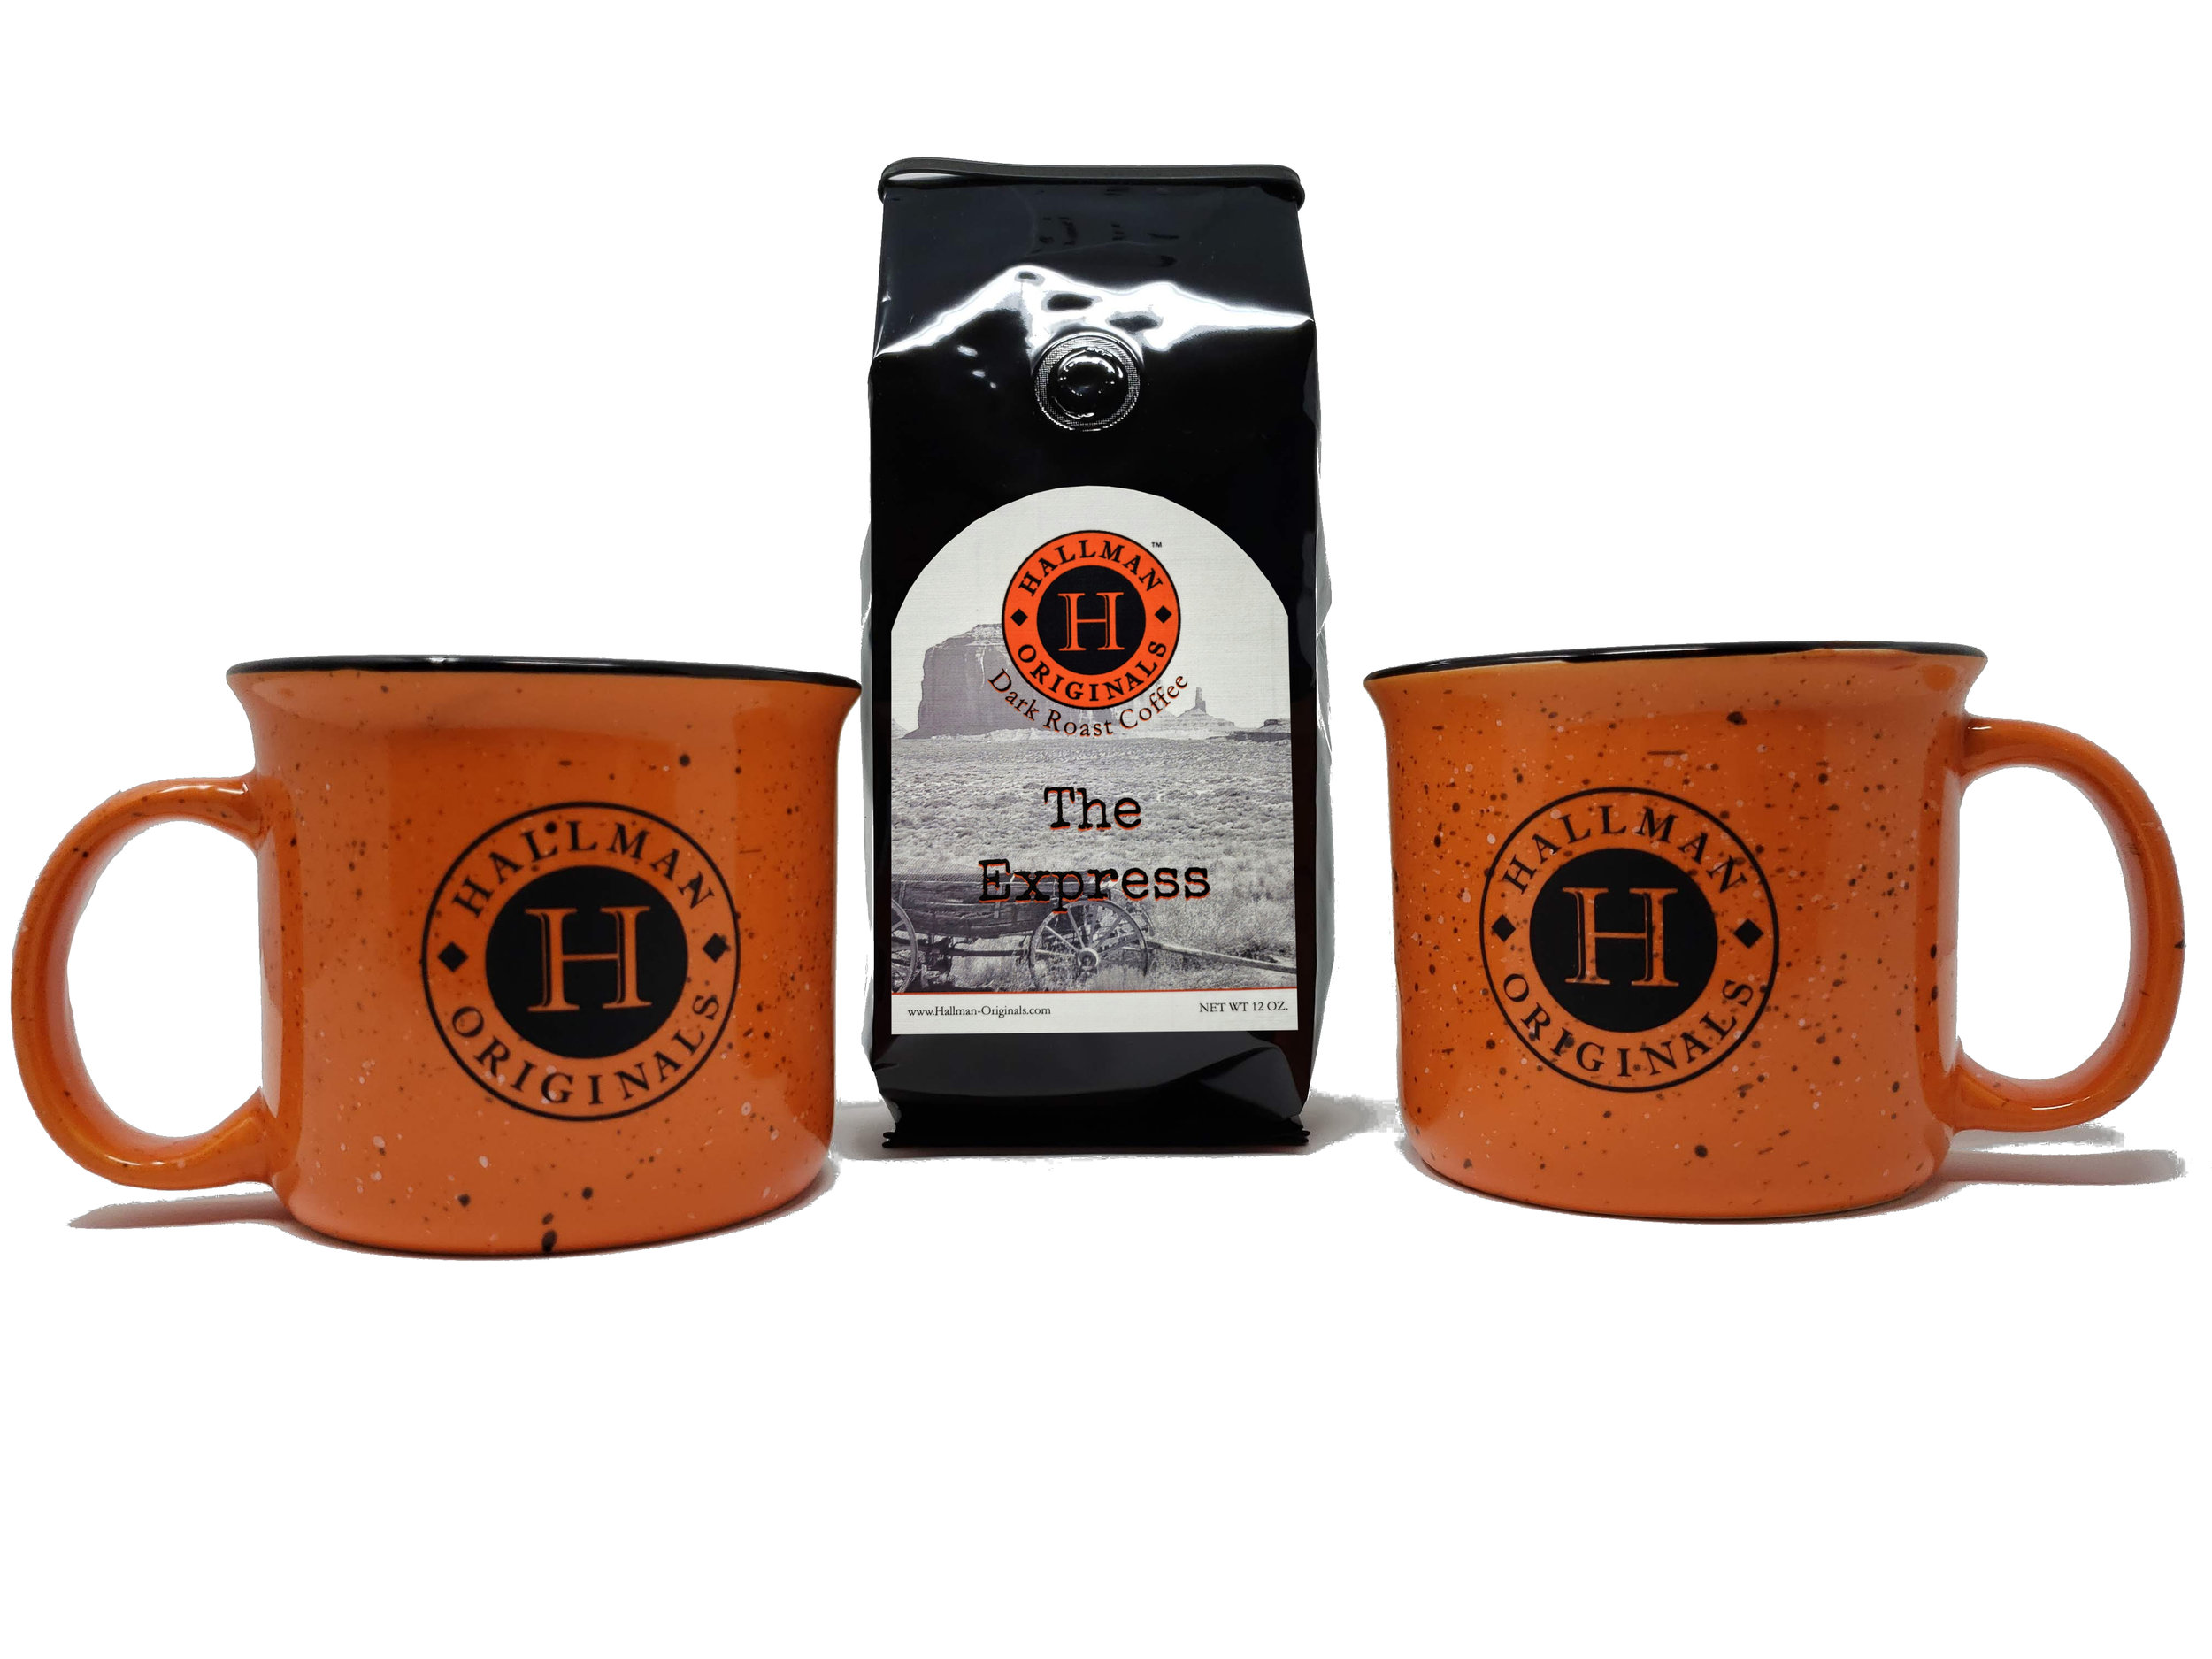 Hallman Originals Coffee has Arrived! - Click below to check out our brand new line of Hallman Originals Coffee. From Light to Dark roast, We have a blend just for you! Wake up and forge your path.